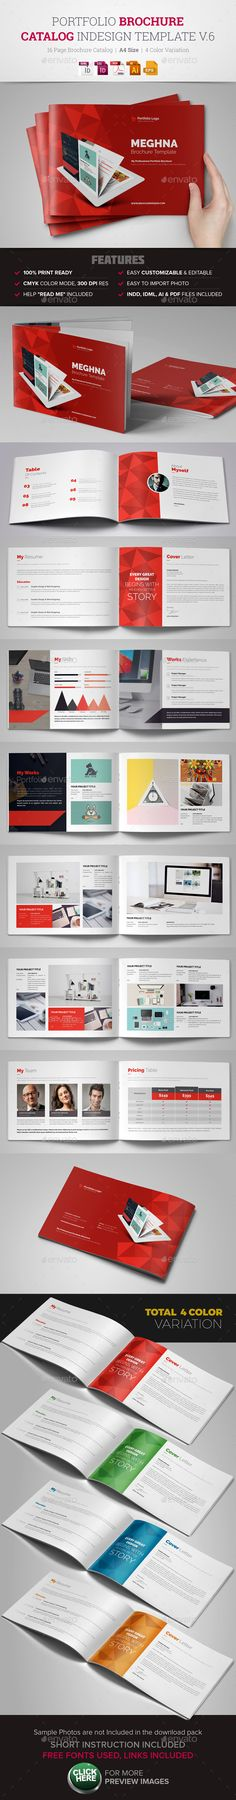 Product Catalog More Product catalog, Indesign templates and - technology brochure template